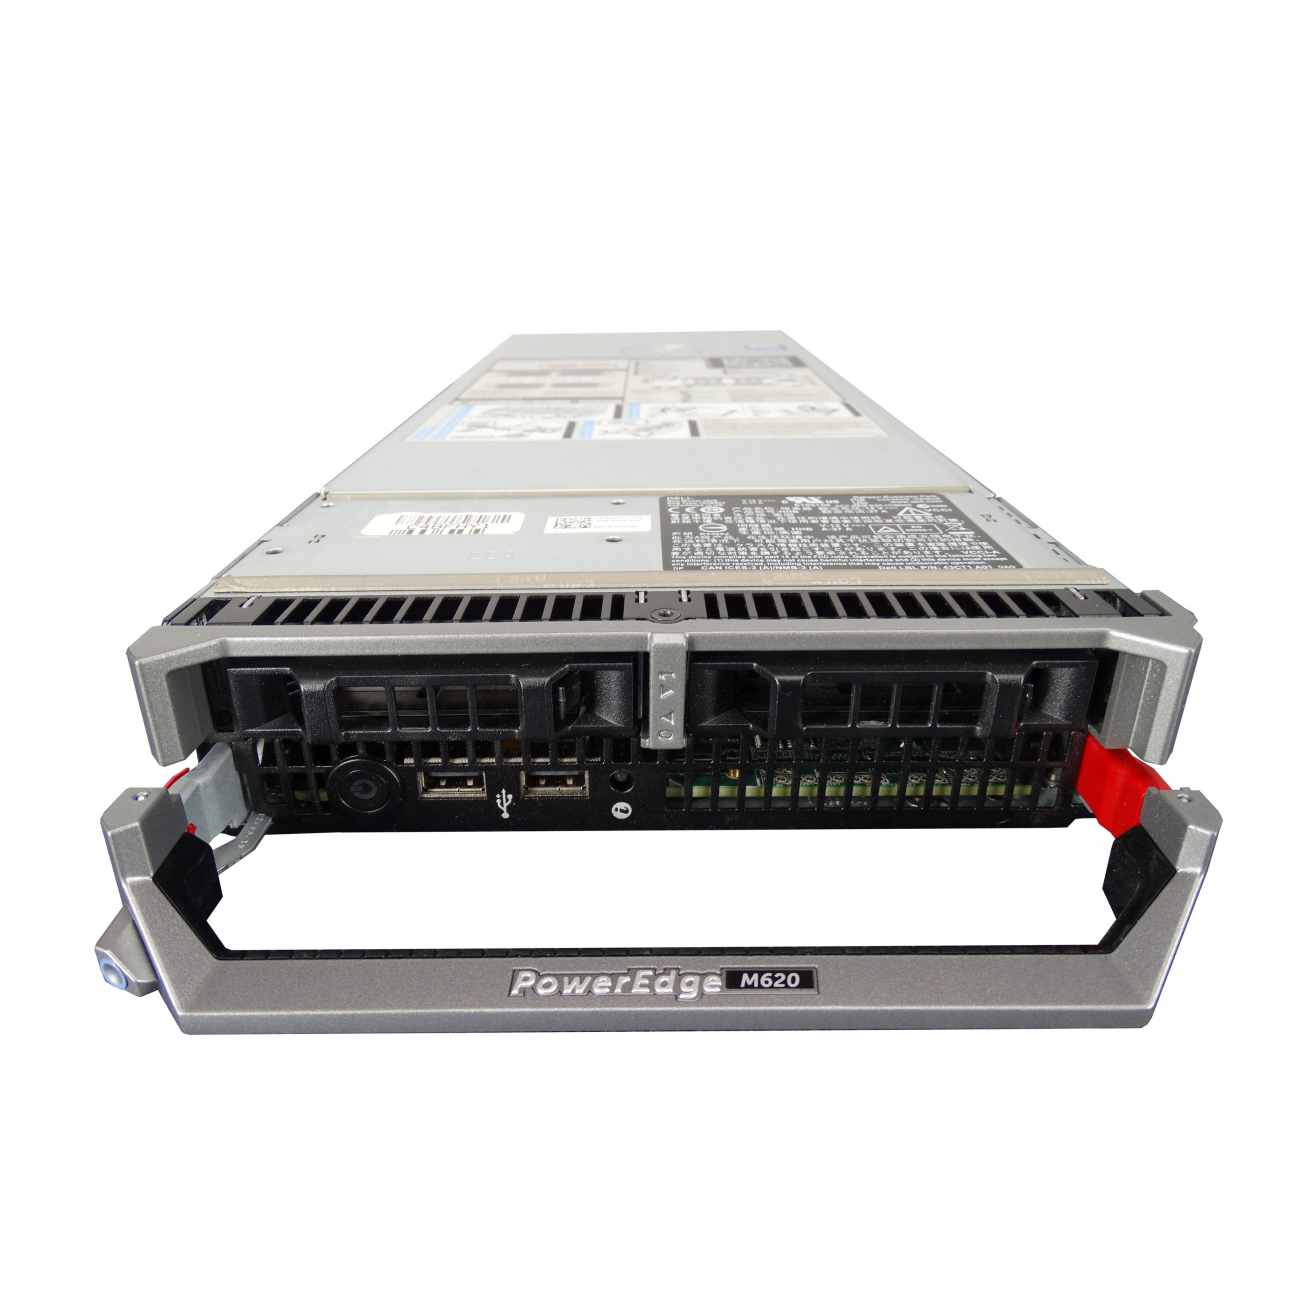 Блейд-сервер DELL PowerEdge M620, 2 процессора Intel 10C E5-2680v2 2.80GHz, 64GB DRAM, PERC H310, 2x10Gb 57810-k